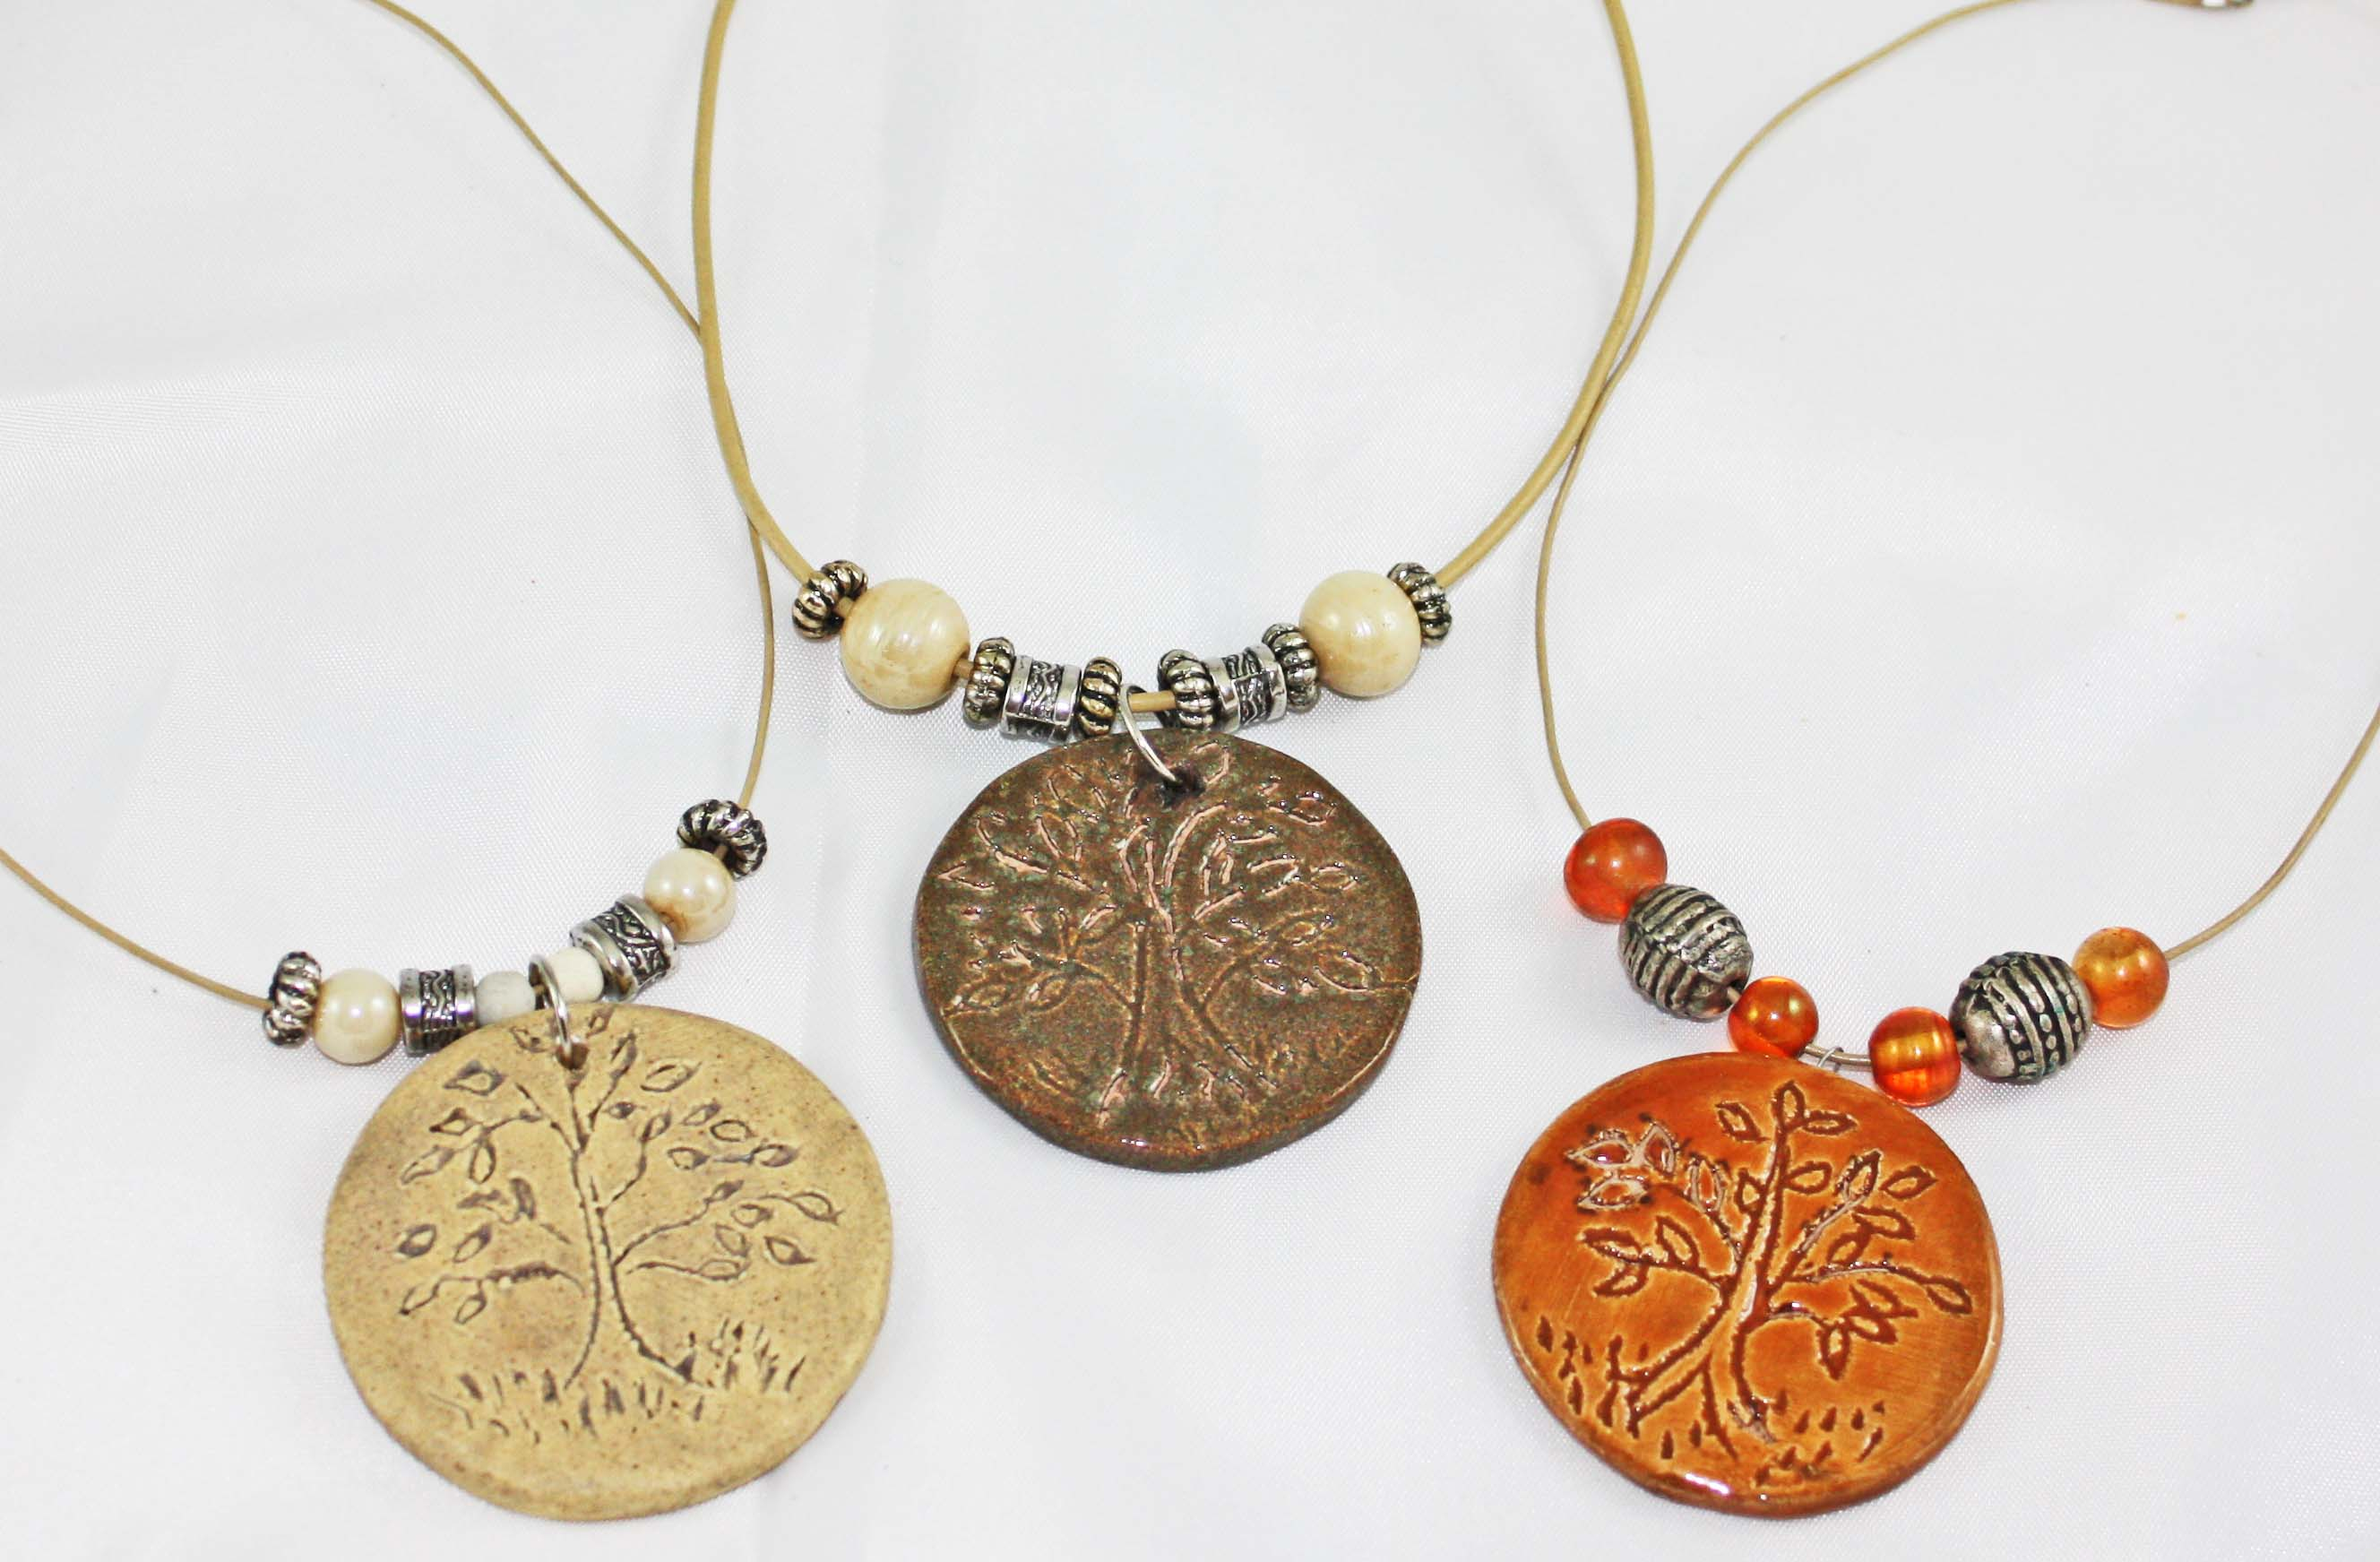 Christian Necklaces on Tree Of Life Necklaces Christian Jewelry